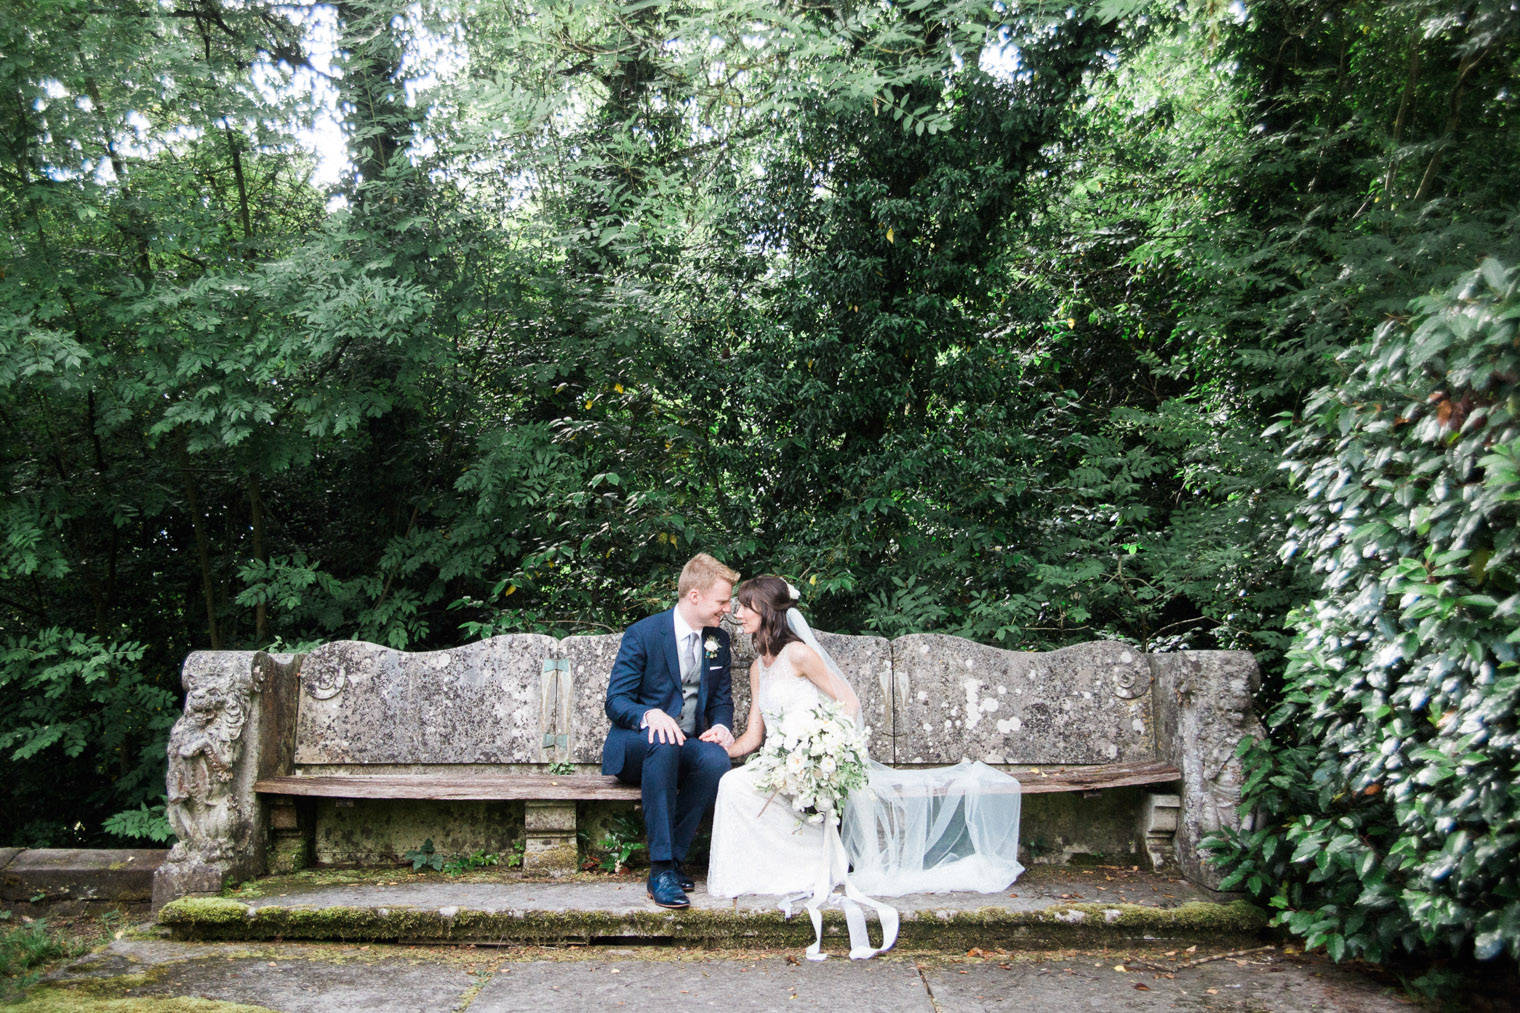 lifestyle-blogger-claire-wainwright-of-the-green-eyed-girl-shares-her-wedding-45